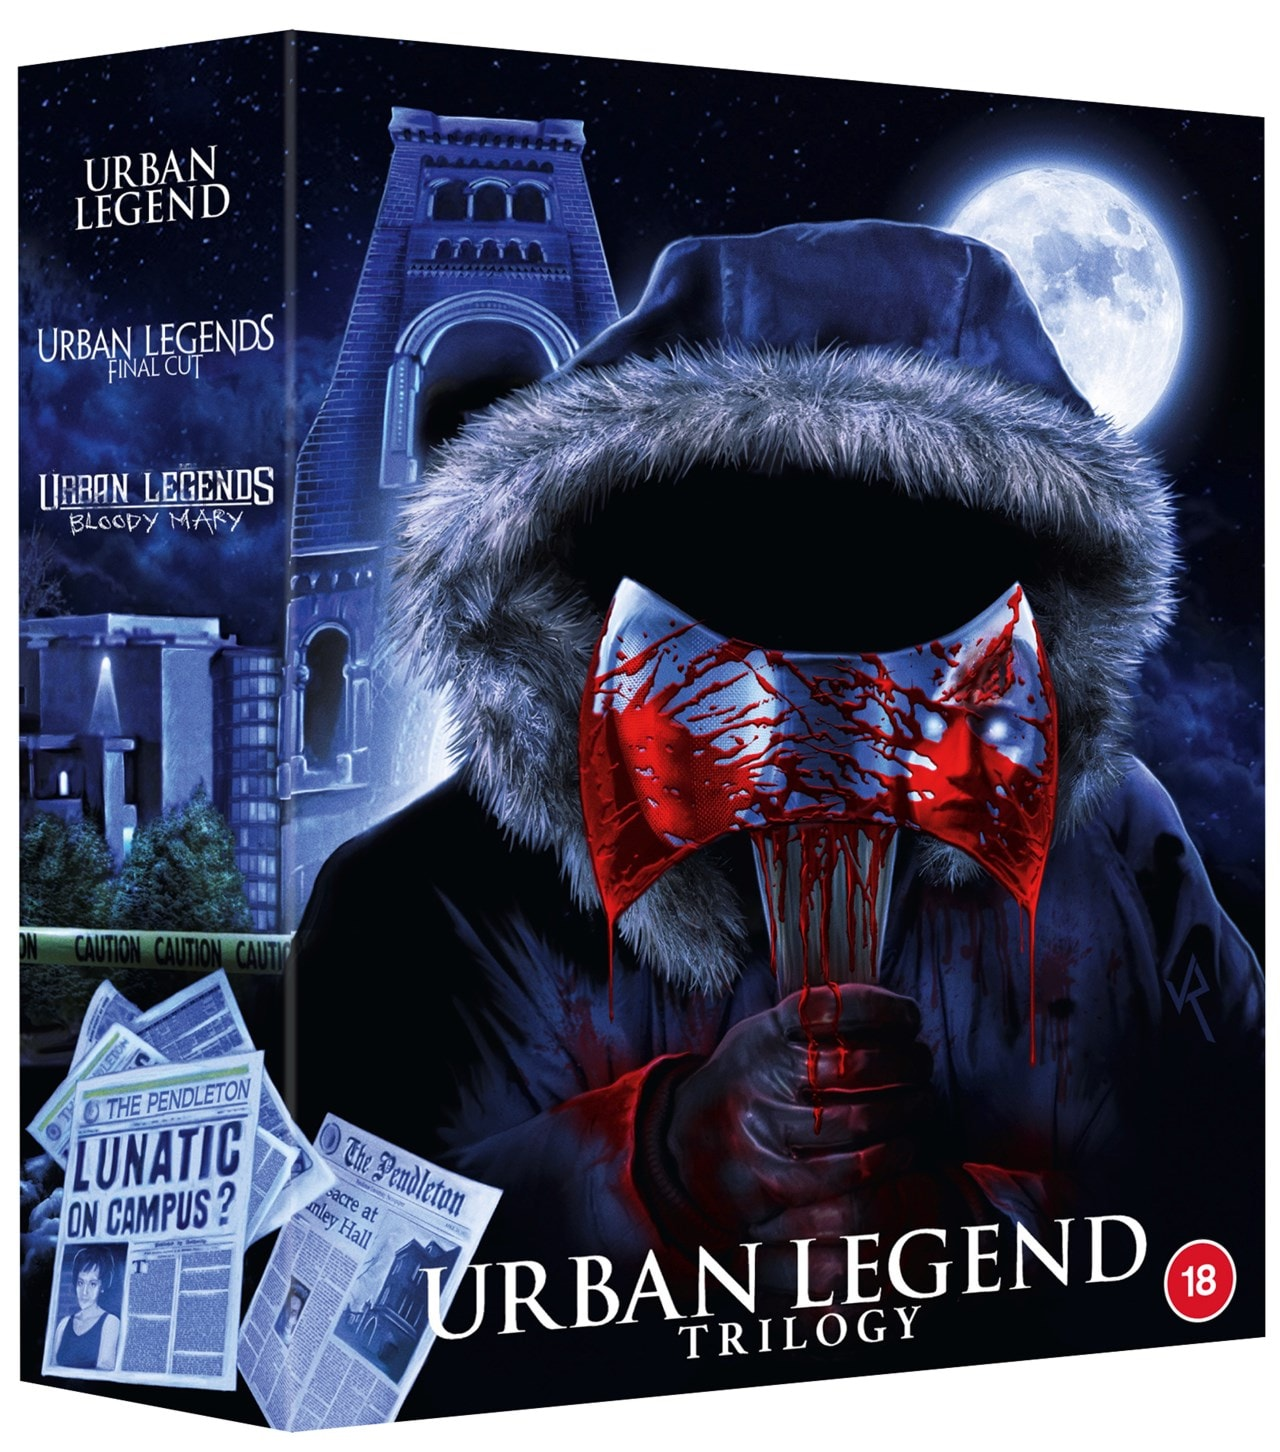 Urban Legend Trilogy Limited Edition - 4